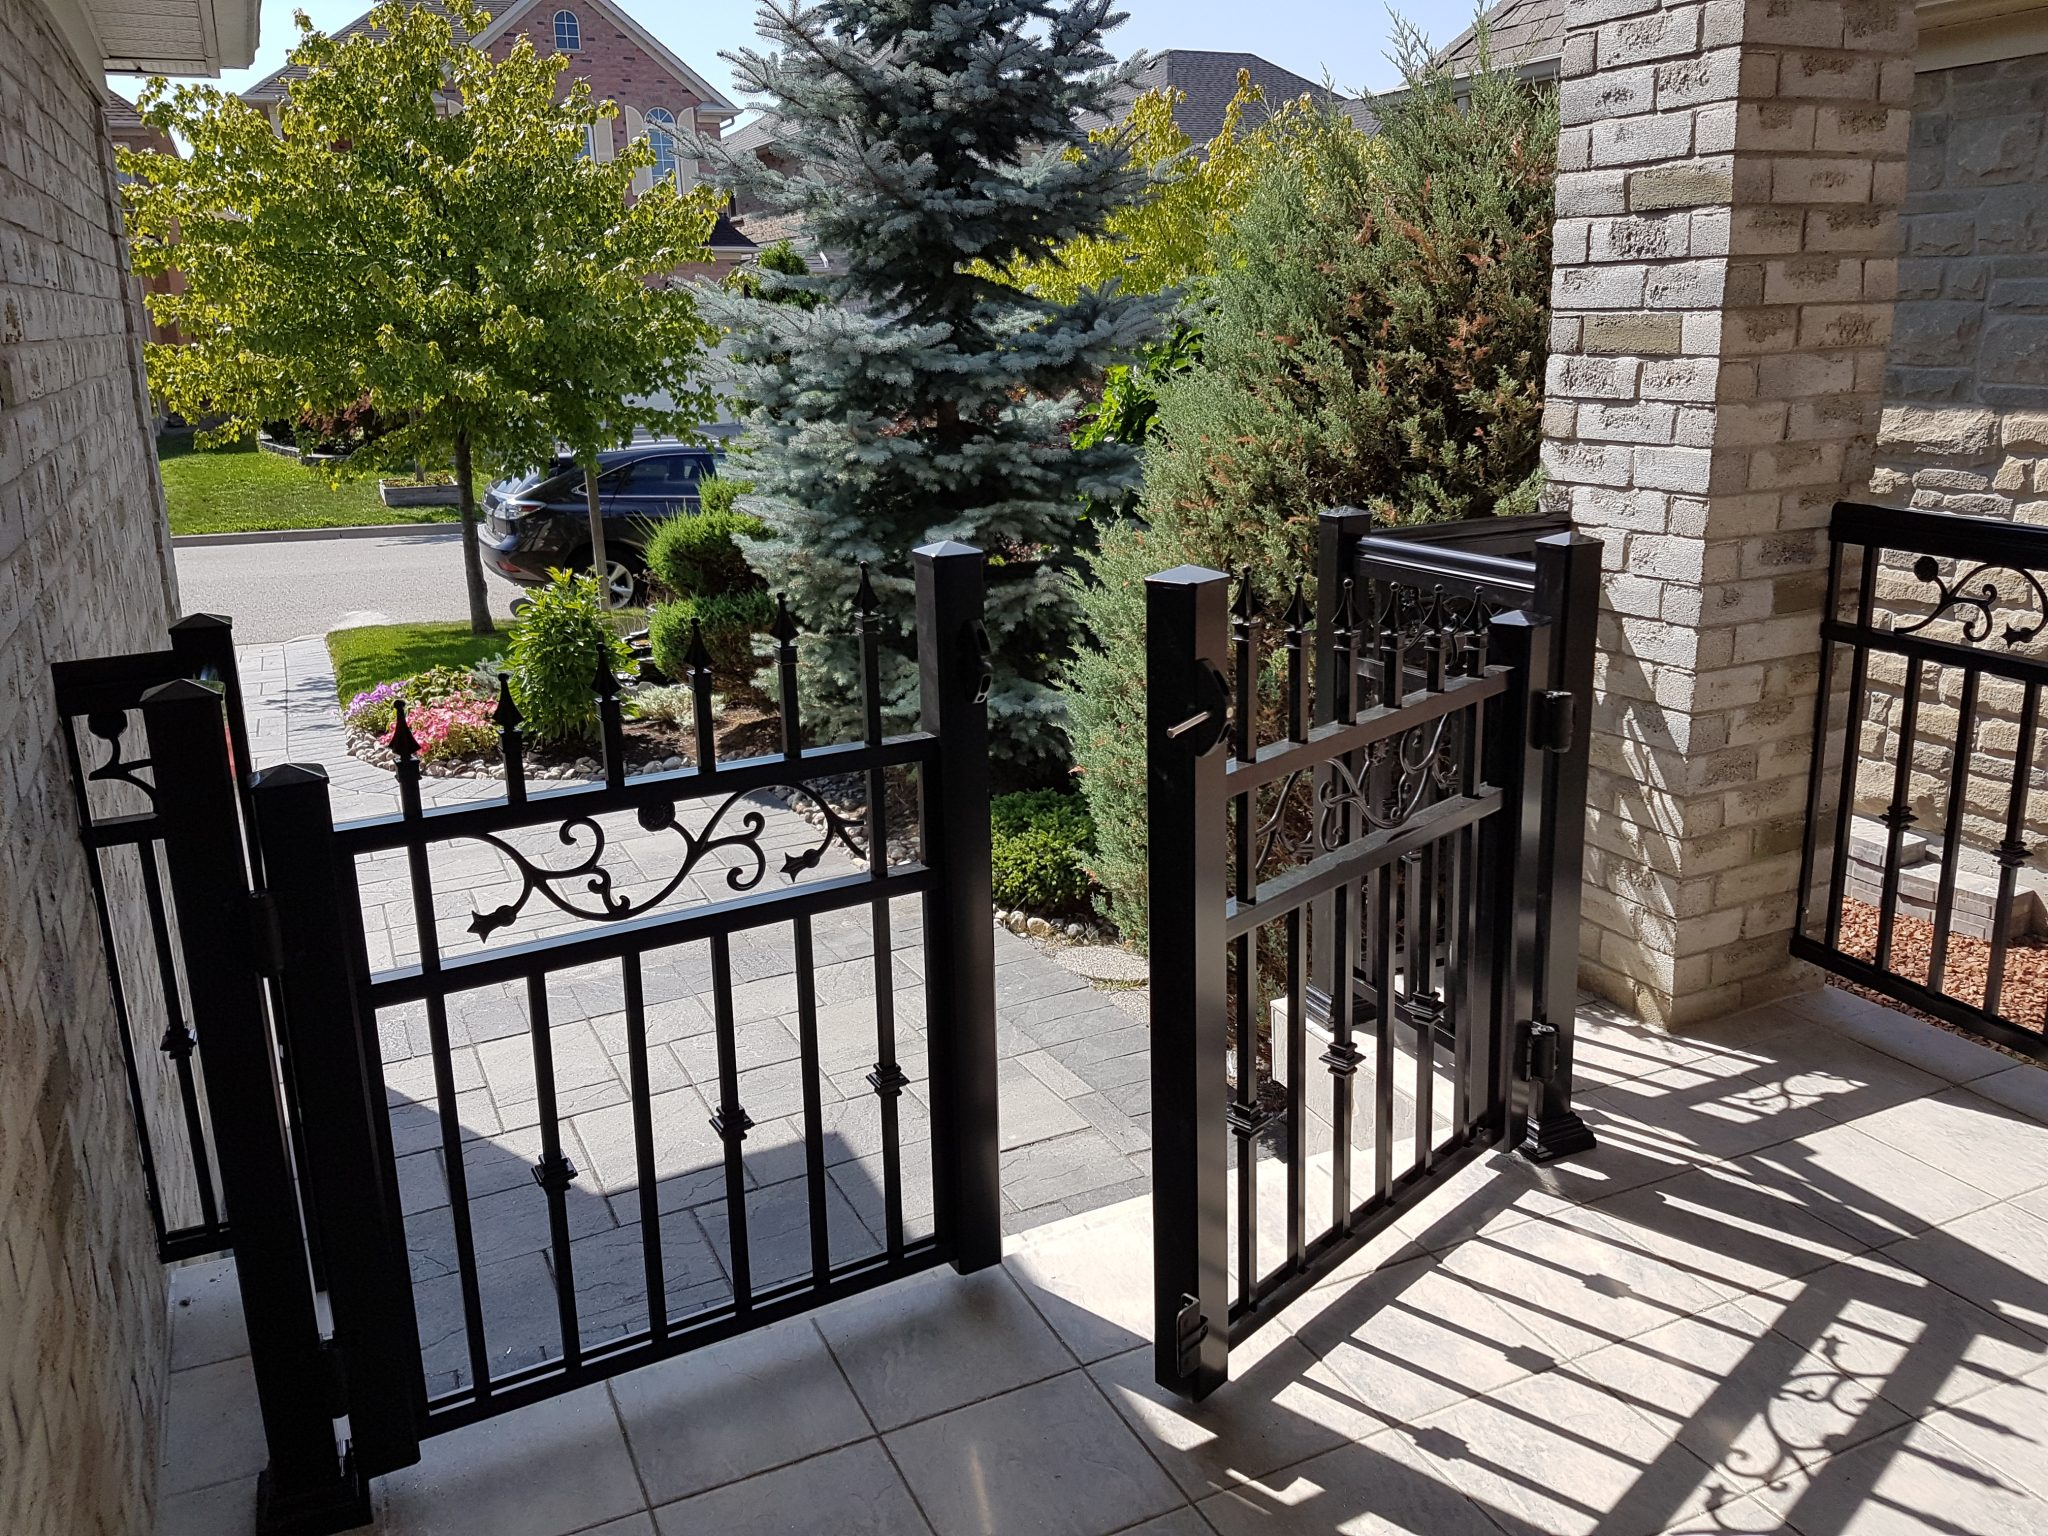 Gate with aluminum pickets